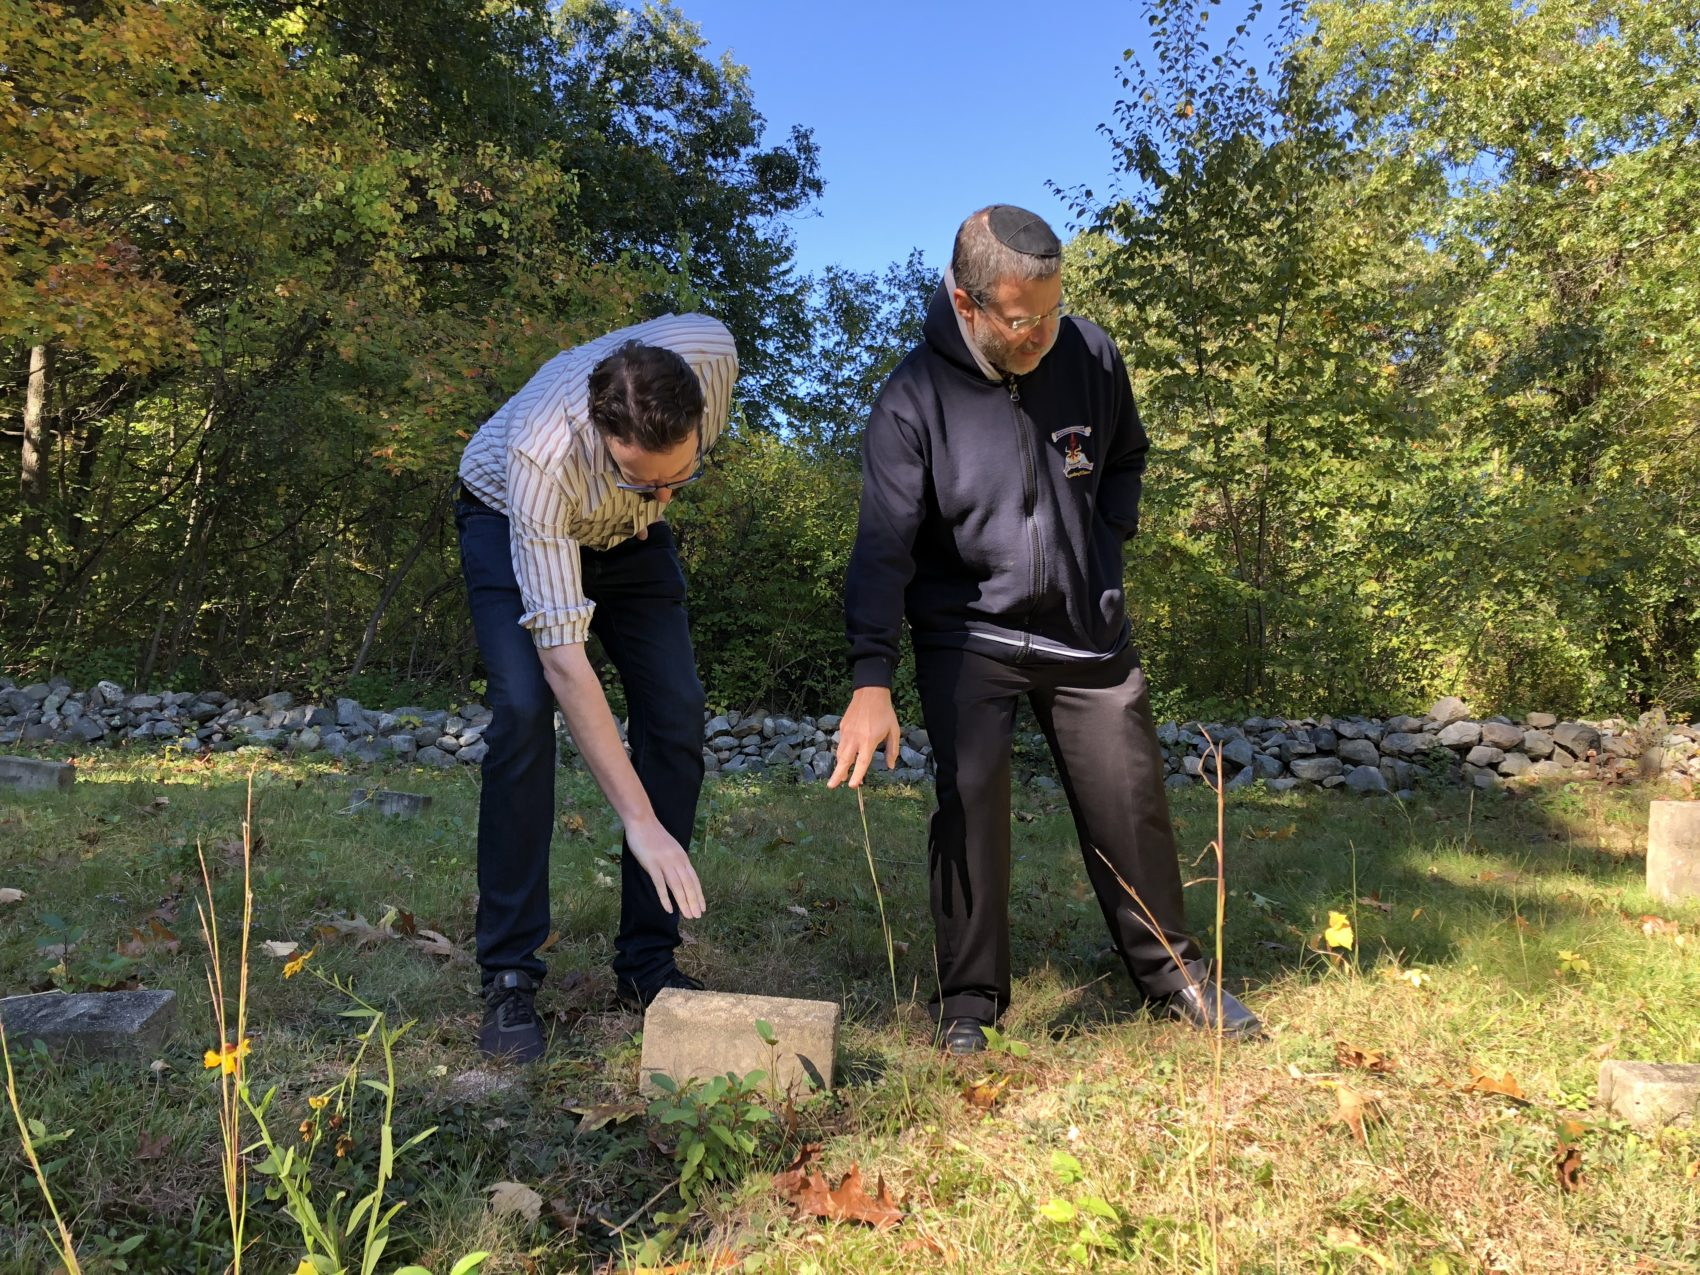 Historian Alex Green, left, and Gann Academy teacher Yoni Kadden point to a grave marker in Waltham's Metfern Cemetery. (Eve Zuckoff for WBUR)